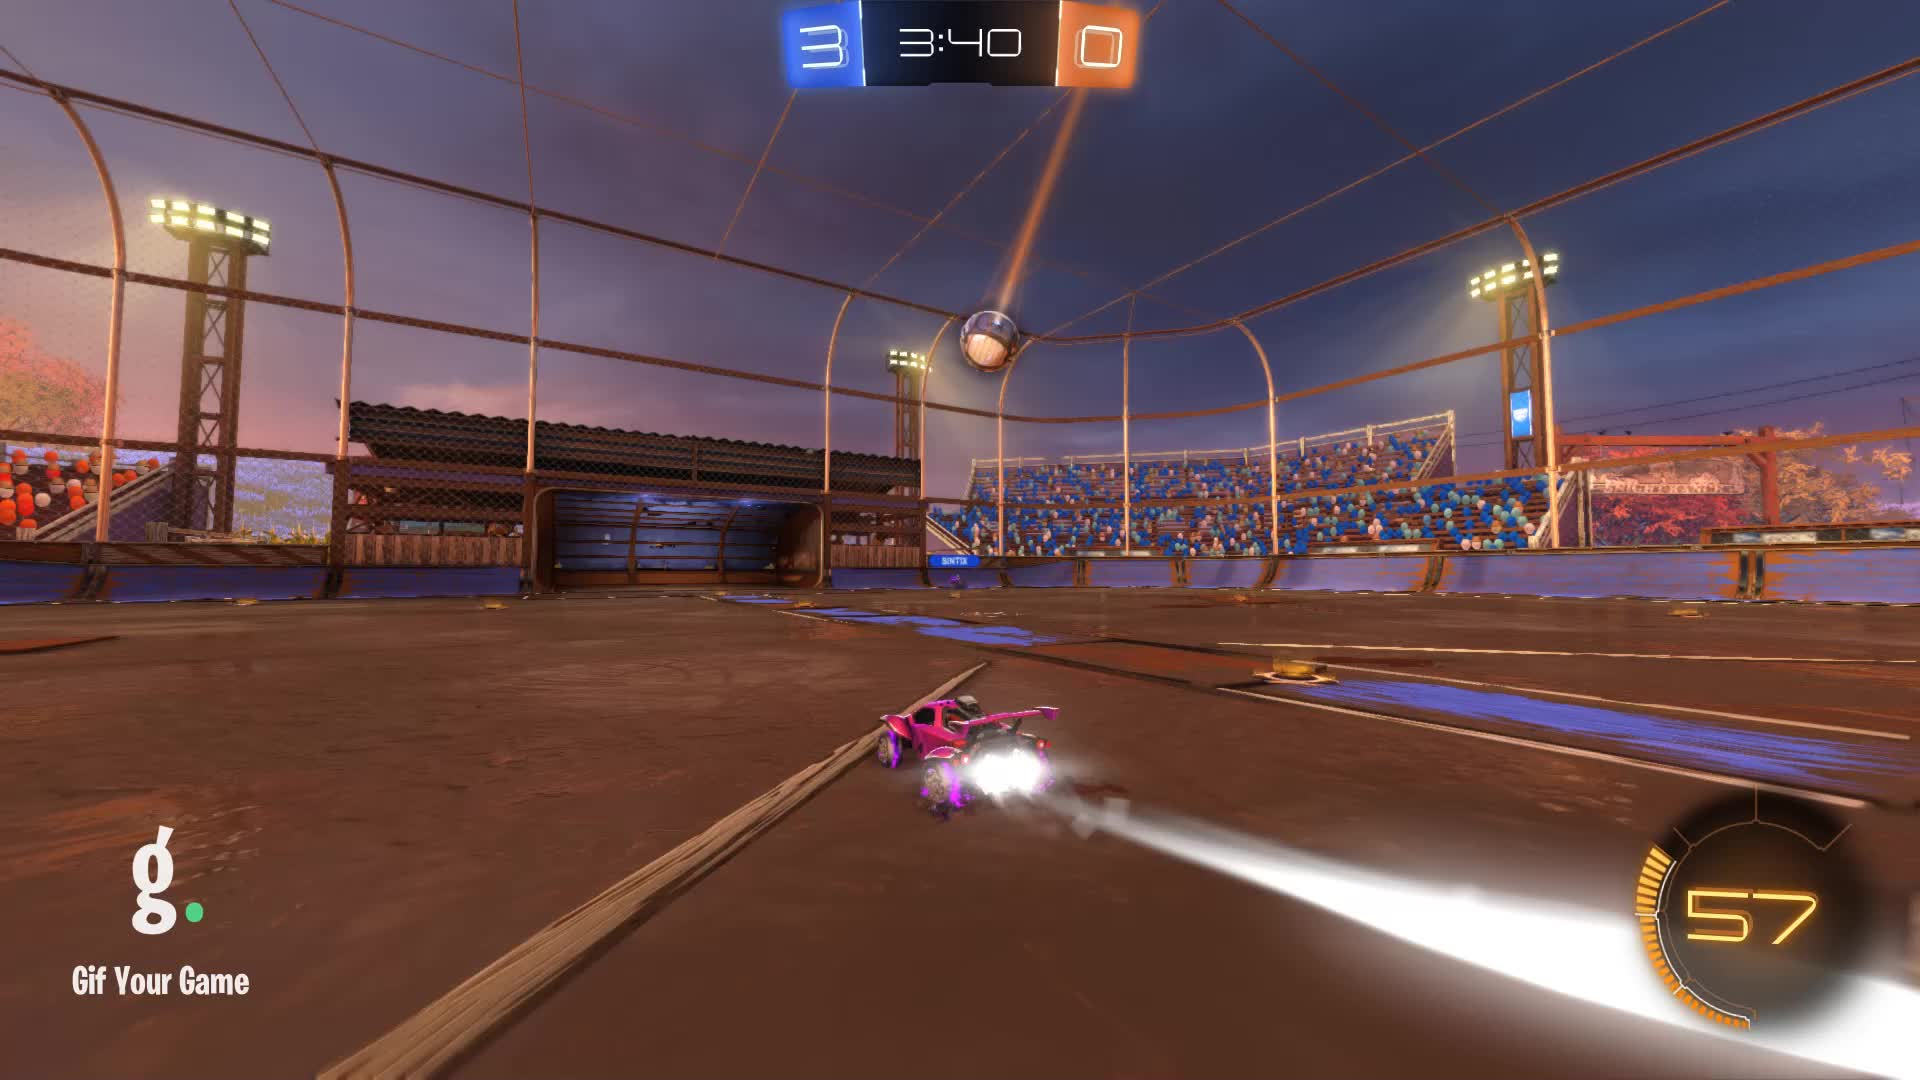 Gif Your Game, GifYourGame, Goal, Rocket League, RocketLeague, snus, Goal 4: The Carry. GIFs